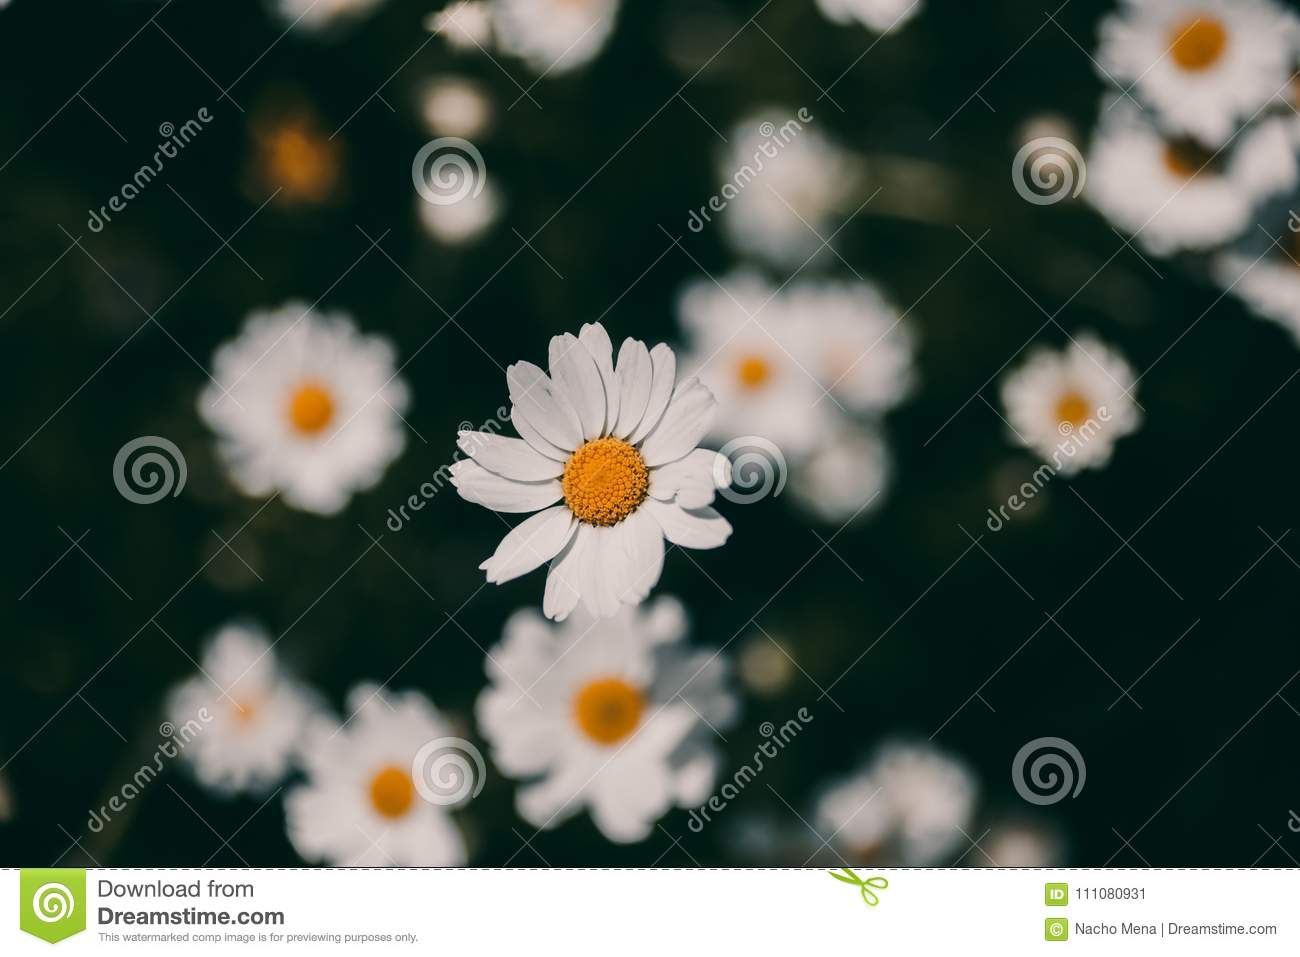 Daisies Vintage Background Closeup Of Daisy Flower In Vintage Style